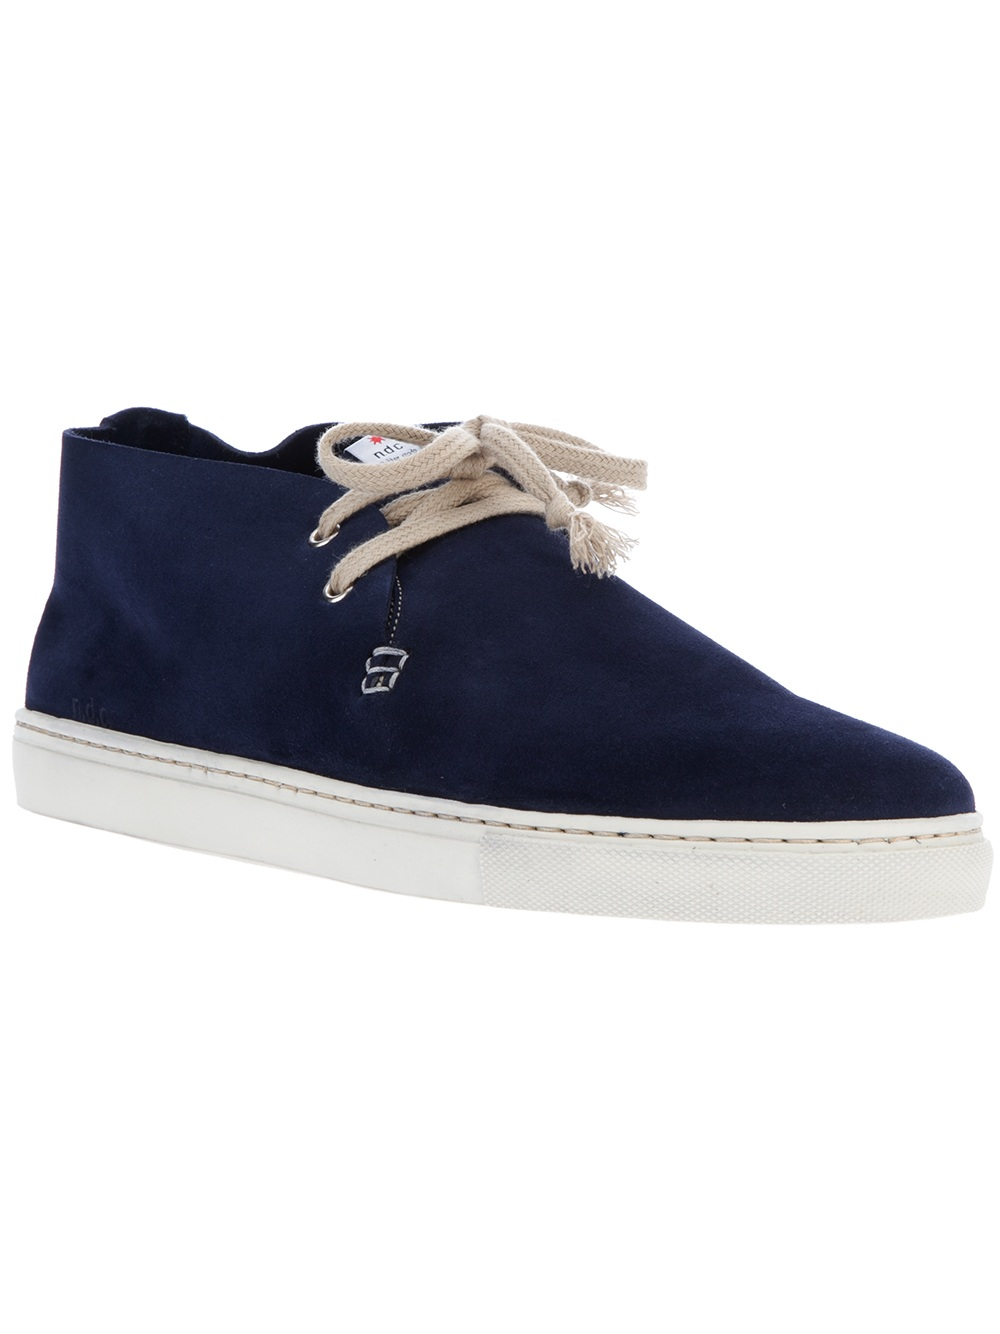 Ndc Laceup Shoe in Blue for Men